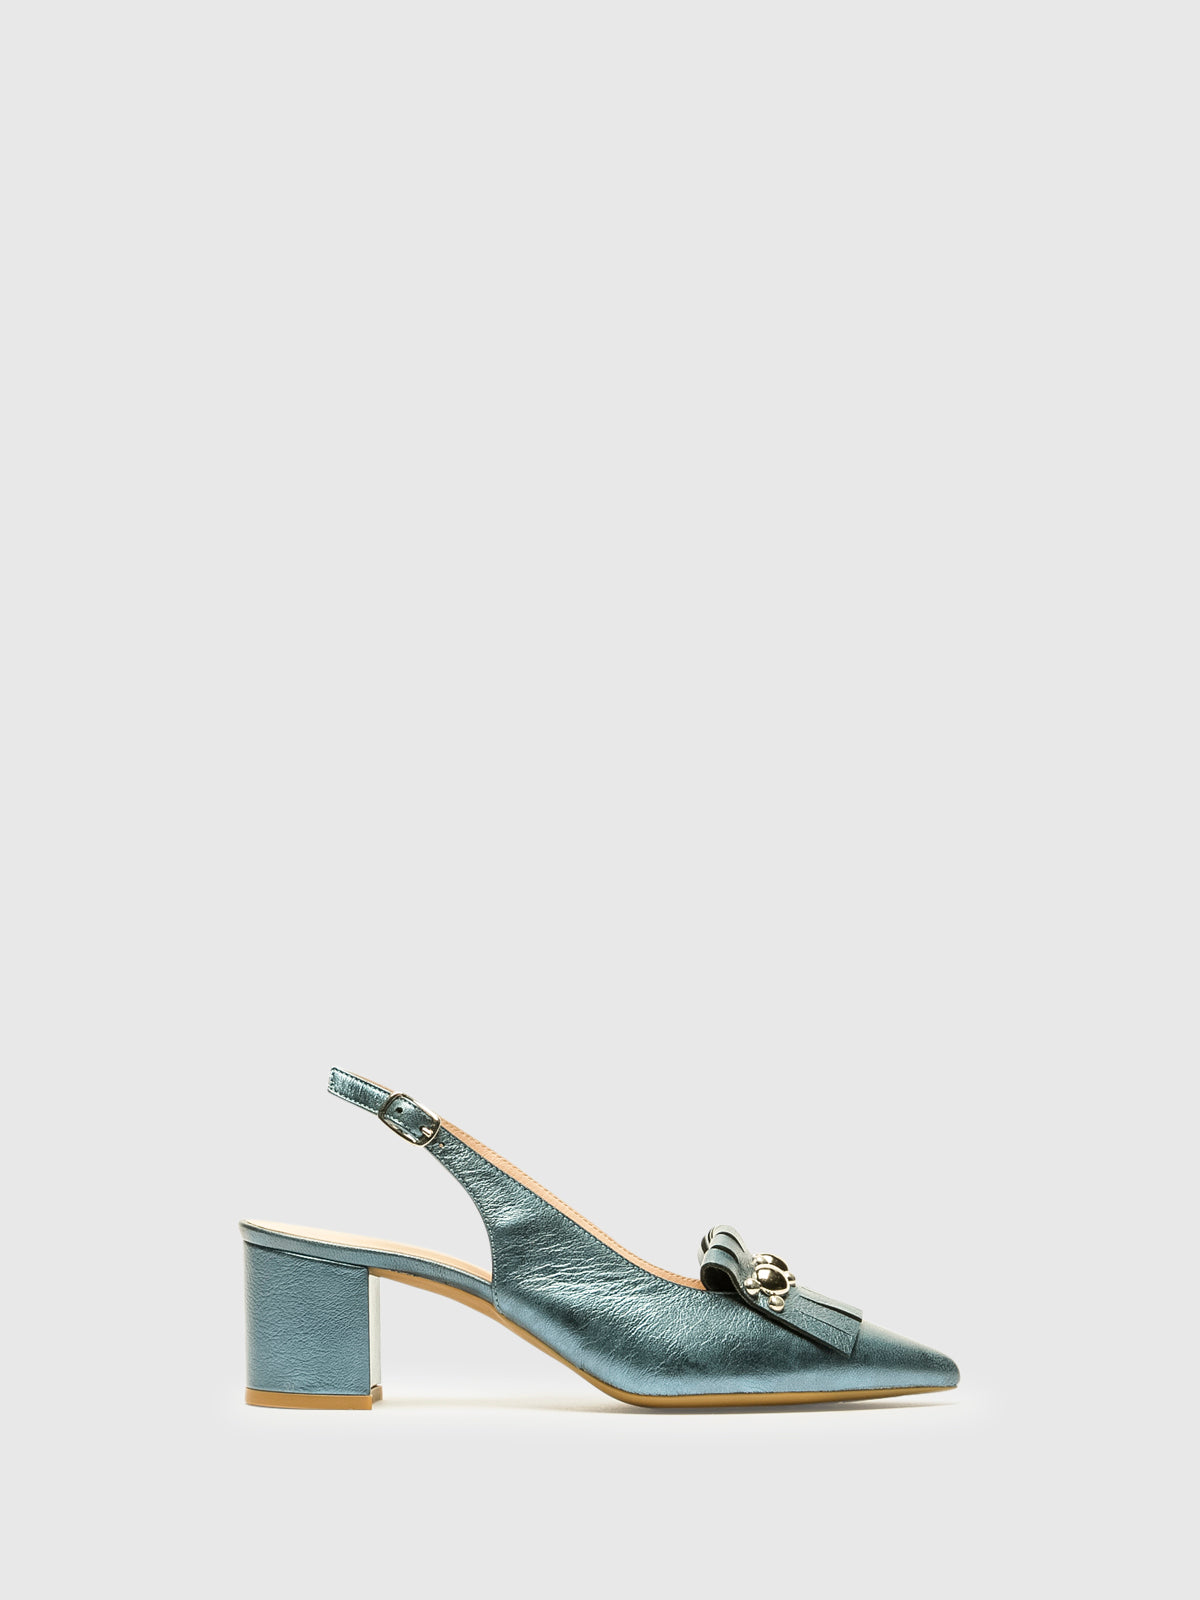 Sofia Costa Blue Sling-Back Pumps Shoes